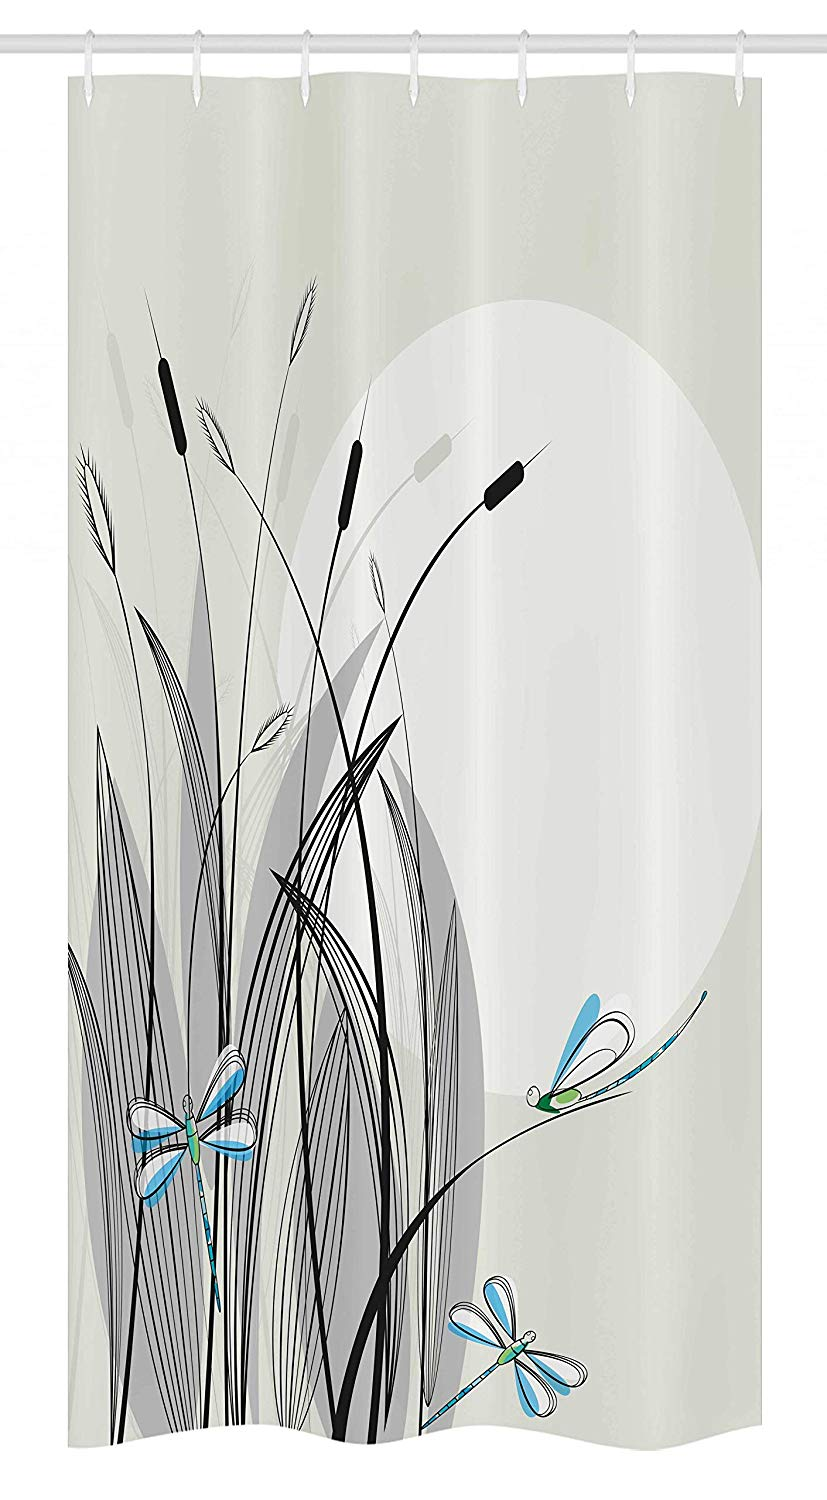 "Ambesonne Dragonfly Stall Shower Curtain, Dragonflies on Flowers and Branches Flourishing Nature Spring Time Predator Print, Fabric Bathroom Decor Set with Hooks, 36"" X 72"", Beige Black"